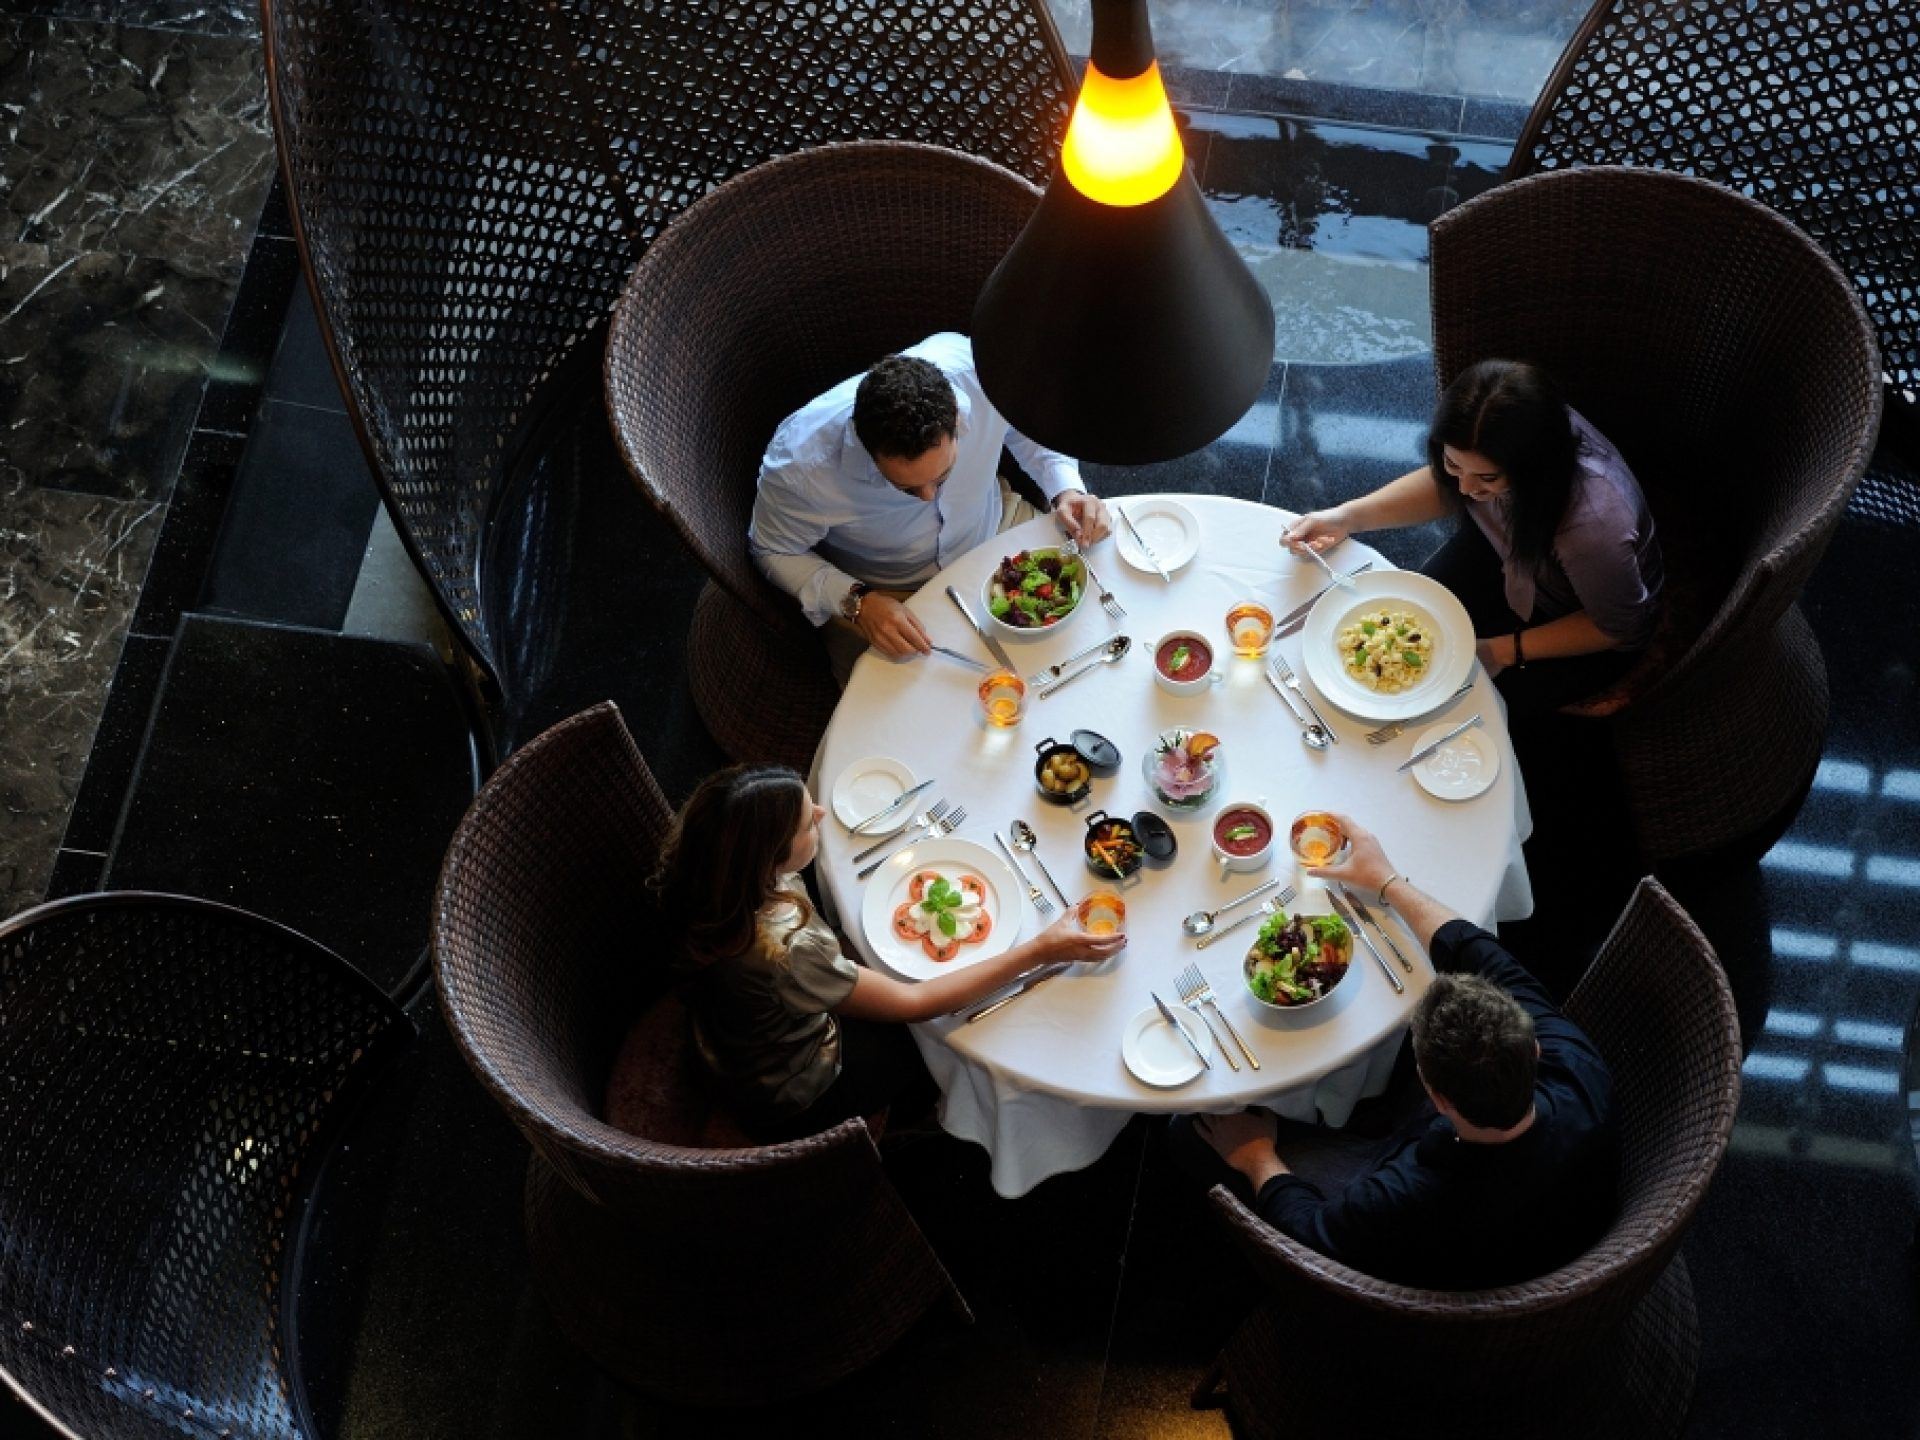 Aerial View Of 4 People Dining At The Foundry